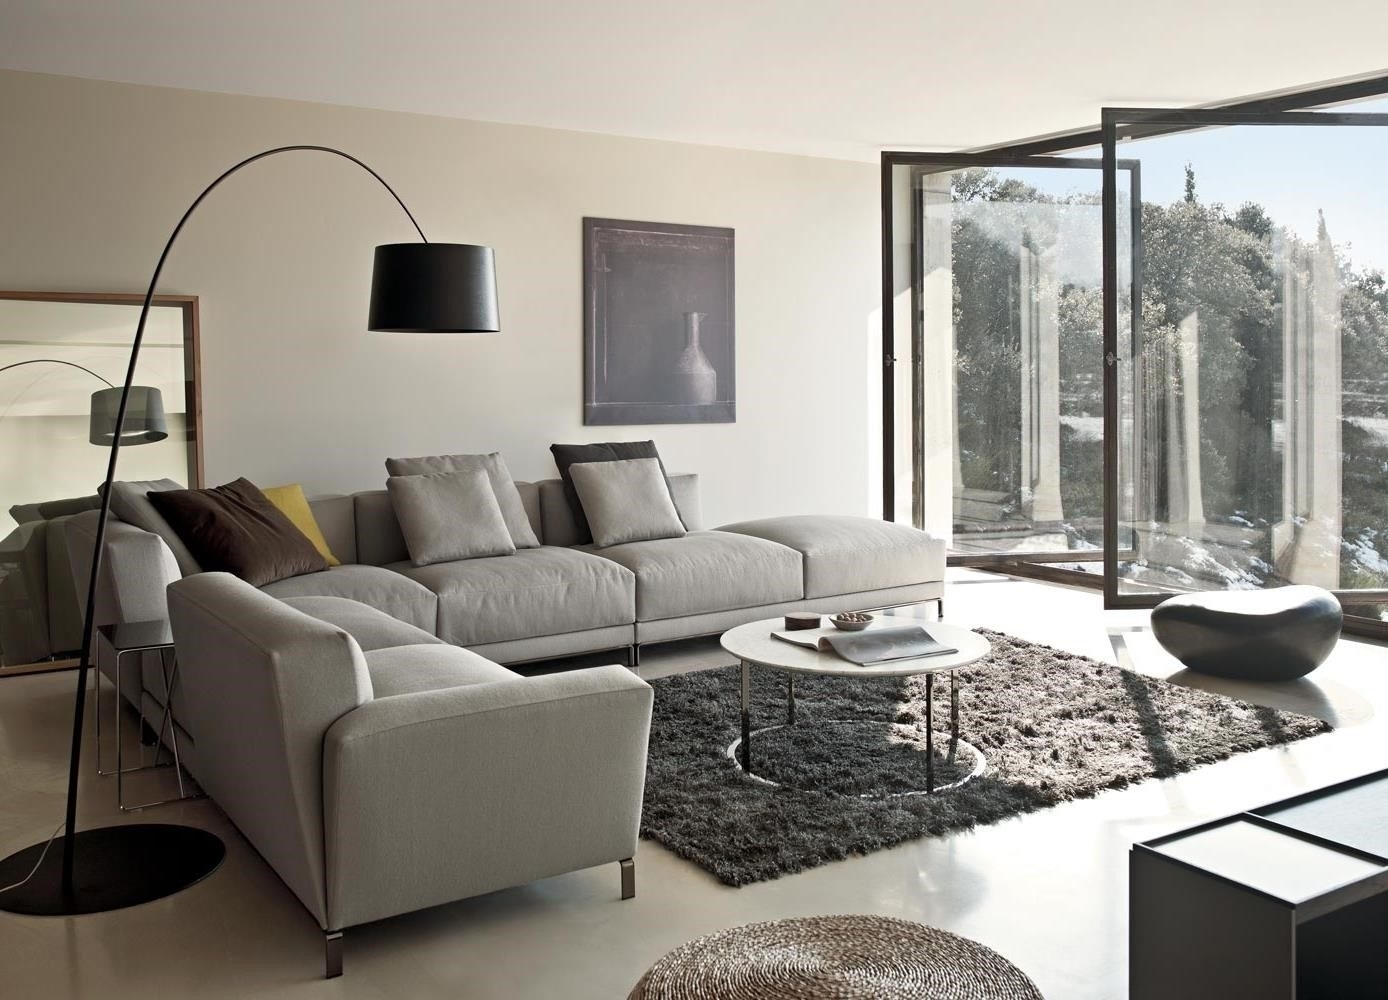 Uncategorized : Apartment Sectional Sofa Within Imposing Sofas pertaining to Apartment Sectional Sofas With Chaise (Image 10 of 10)